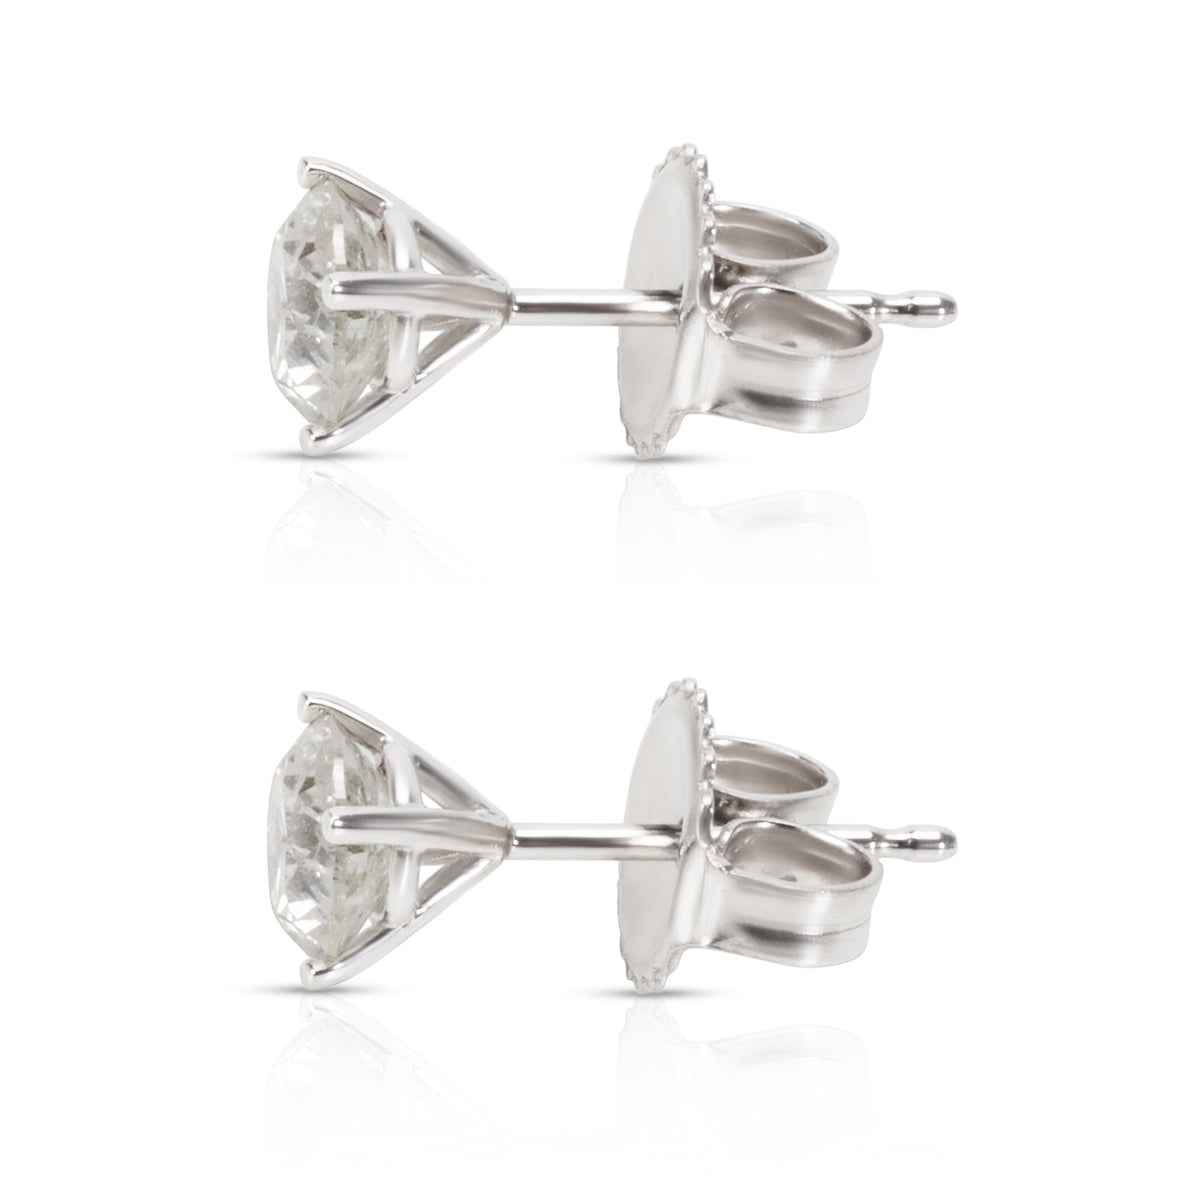 BRAND NEW Diamond Stud Earrings in 14K White Gold (1.05 CTW)